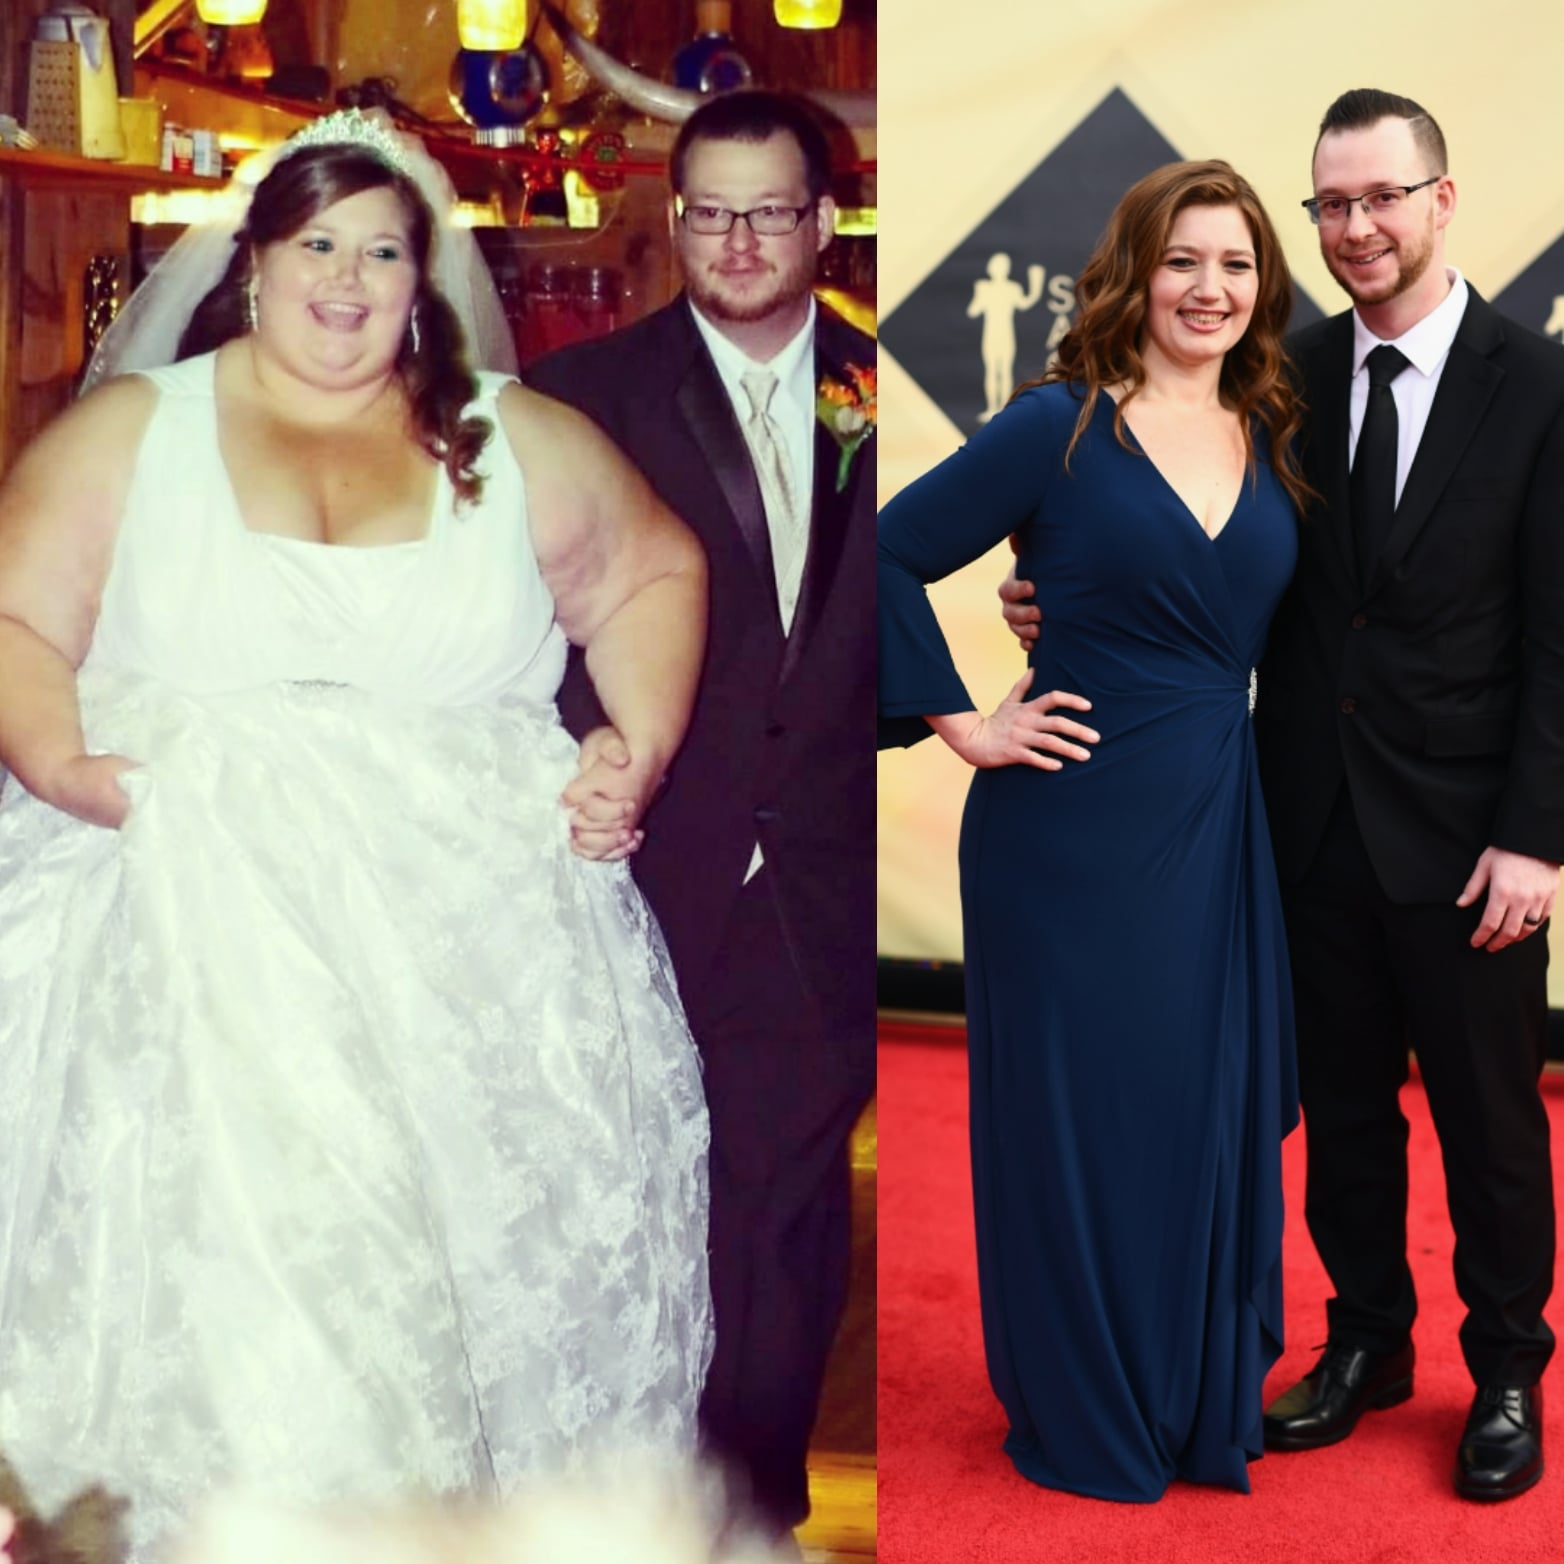 Lexi Reed's weight-loss journey has captivated hundreds of thousands of people — including Bob Harper. In fact, Bob told POPSUGAR that she was a must follow — so, naturally, we had to talk to the inspiring woman herself.